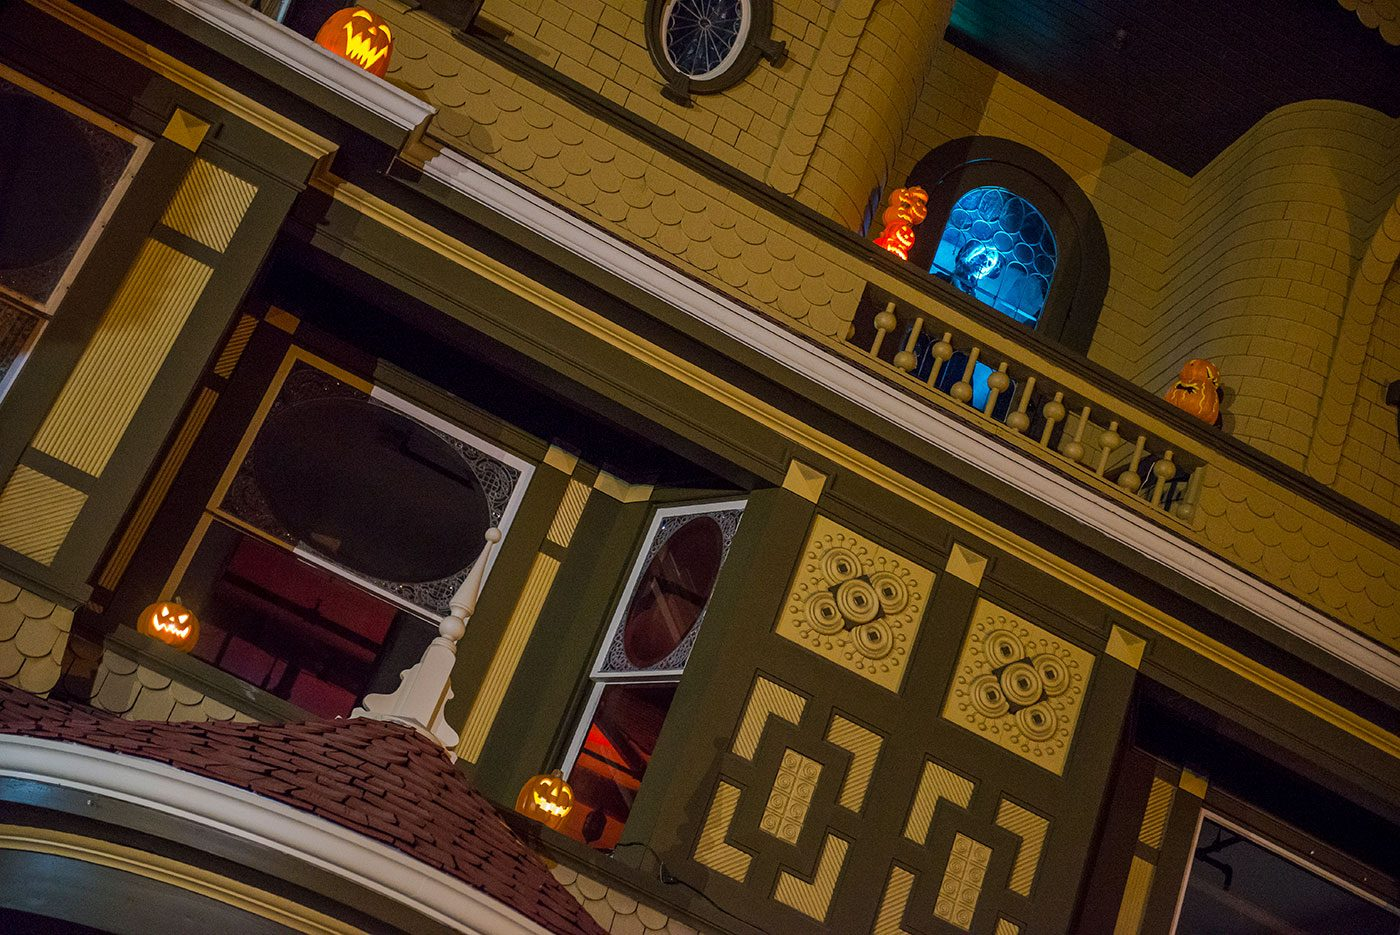 gallery - winchester mystery house